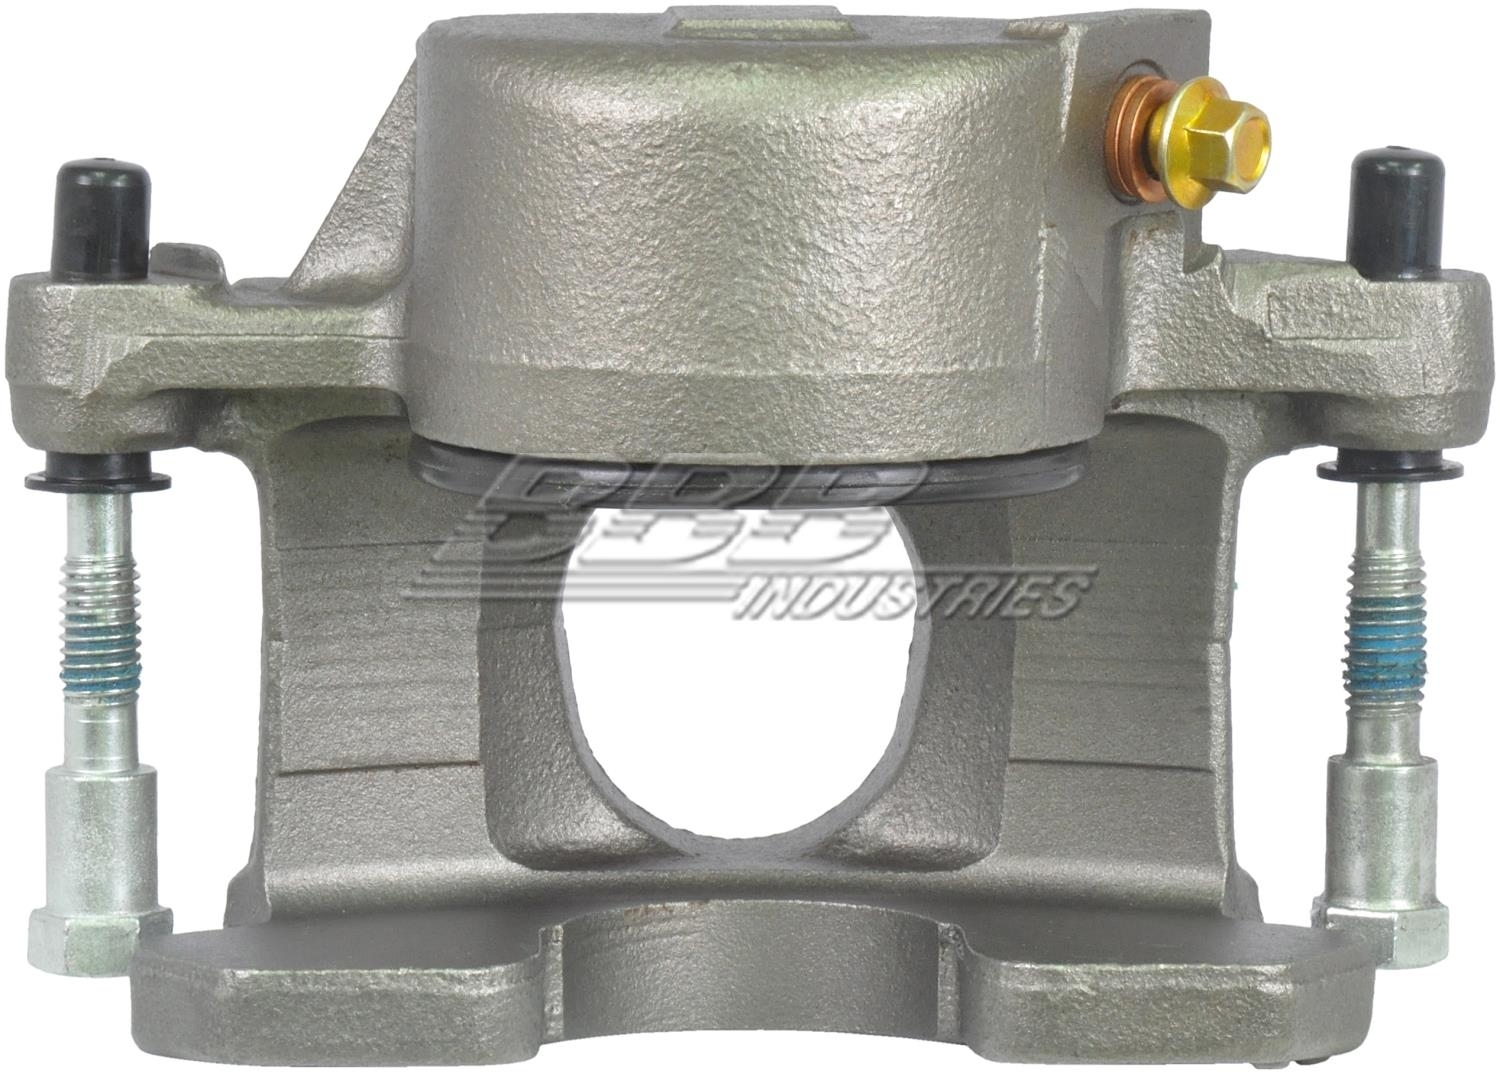 BBB INDUSTRIES - Reman Caliper w/ Installation Hardware - BBA 97-17821B